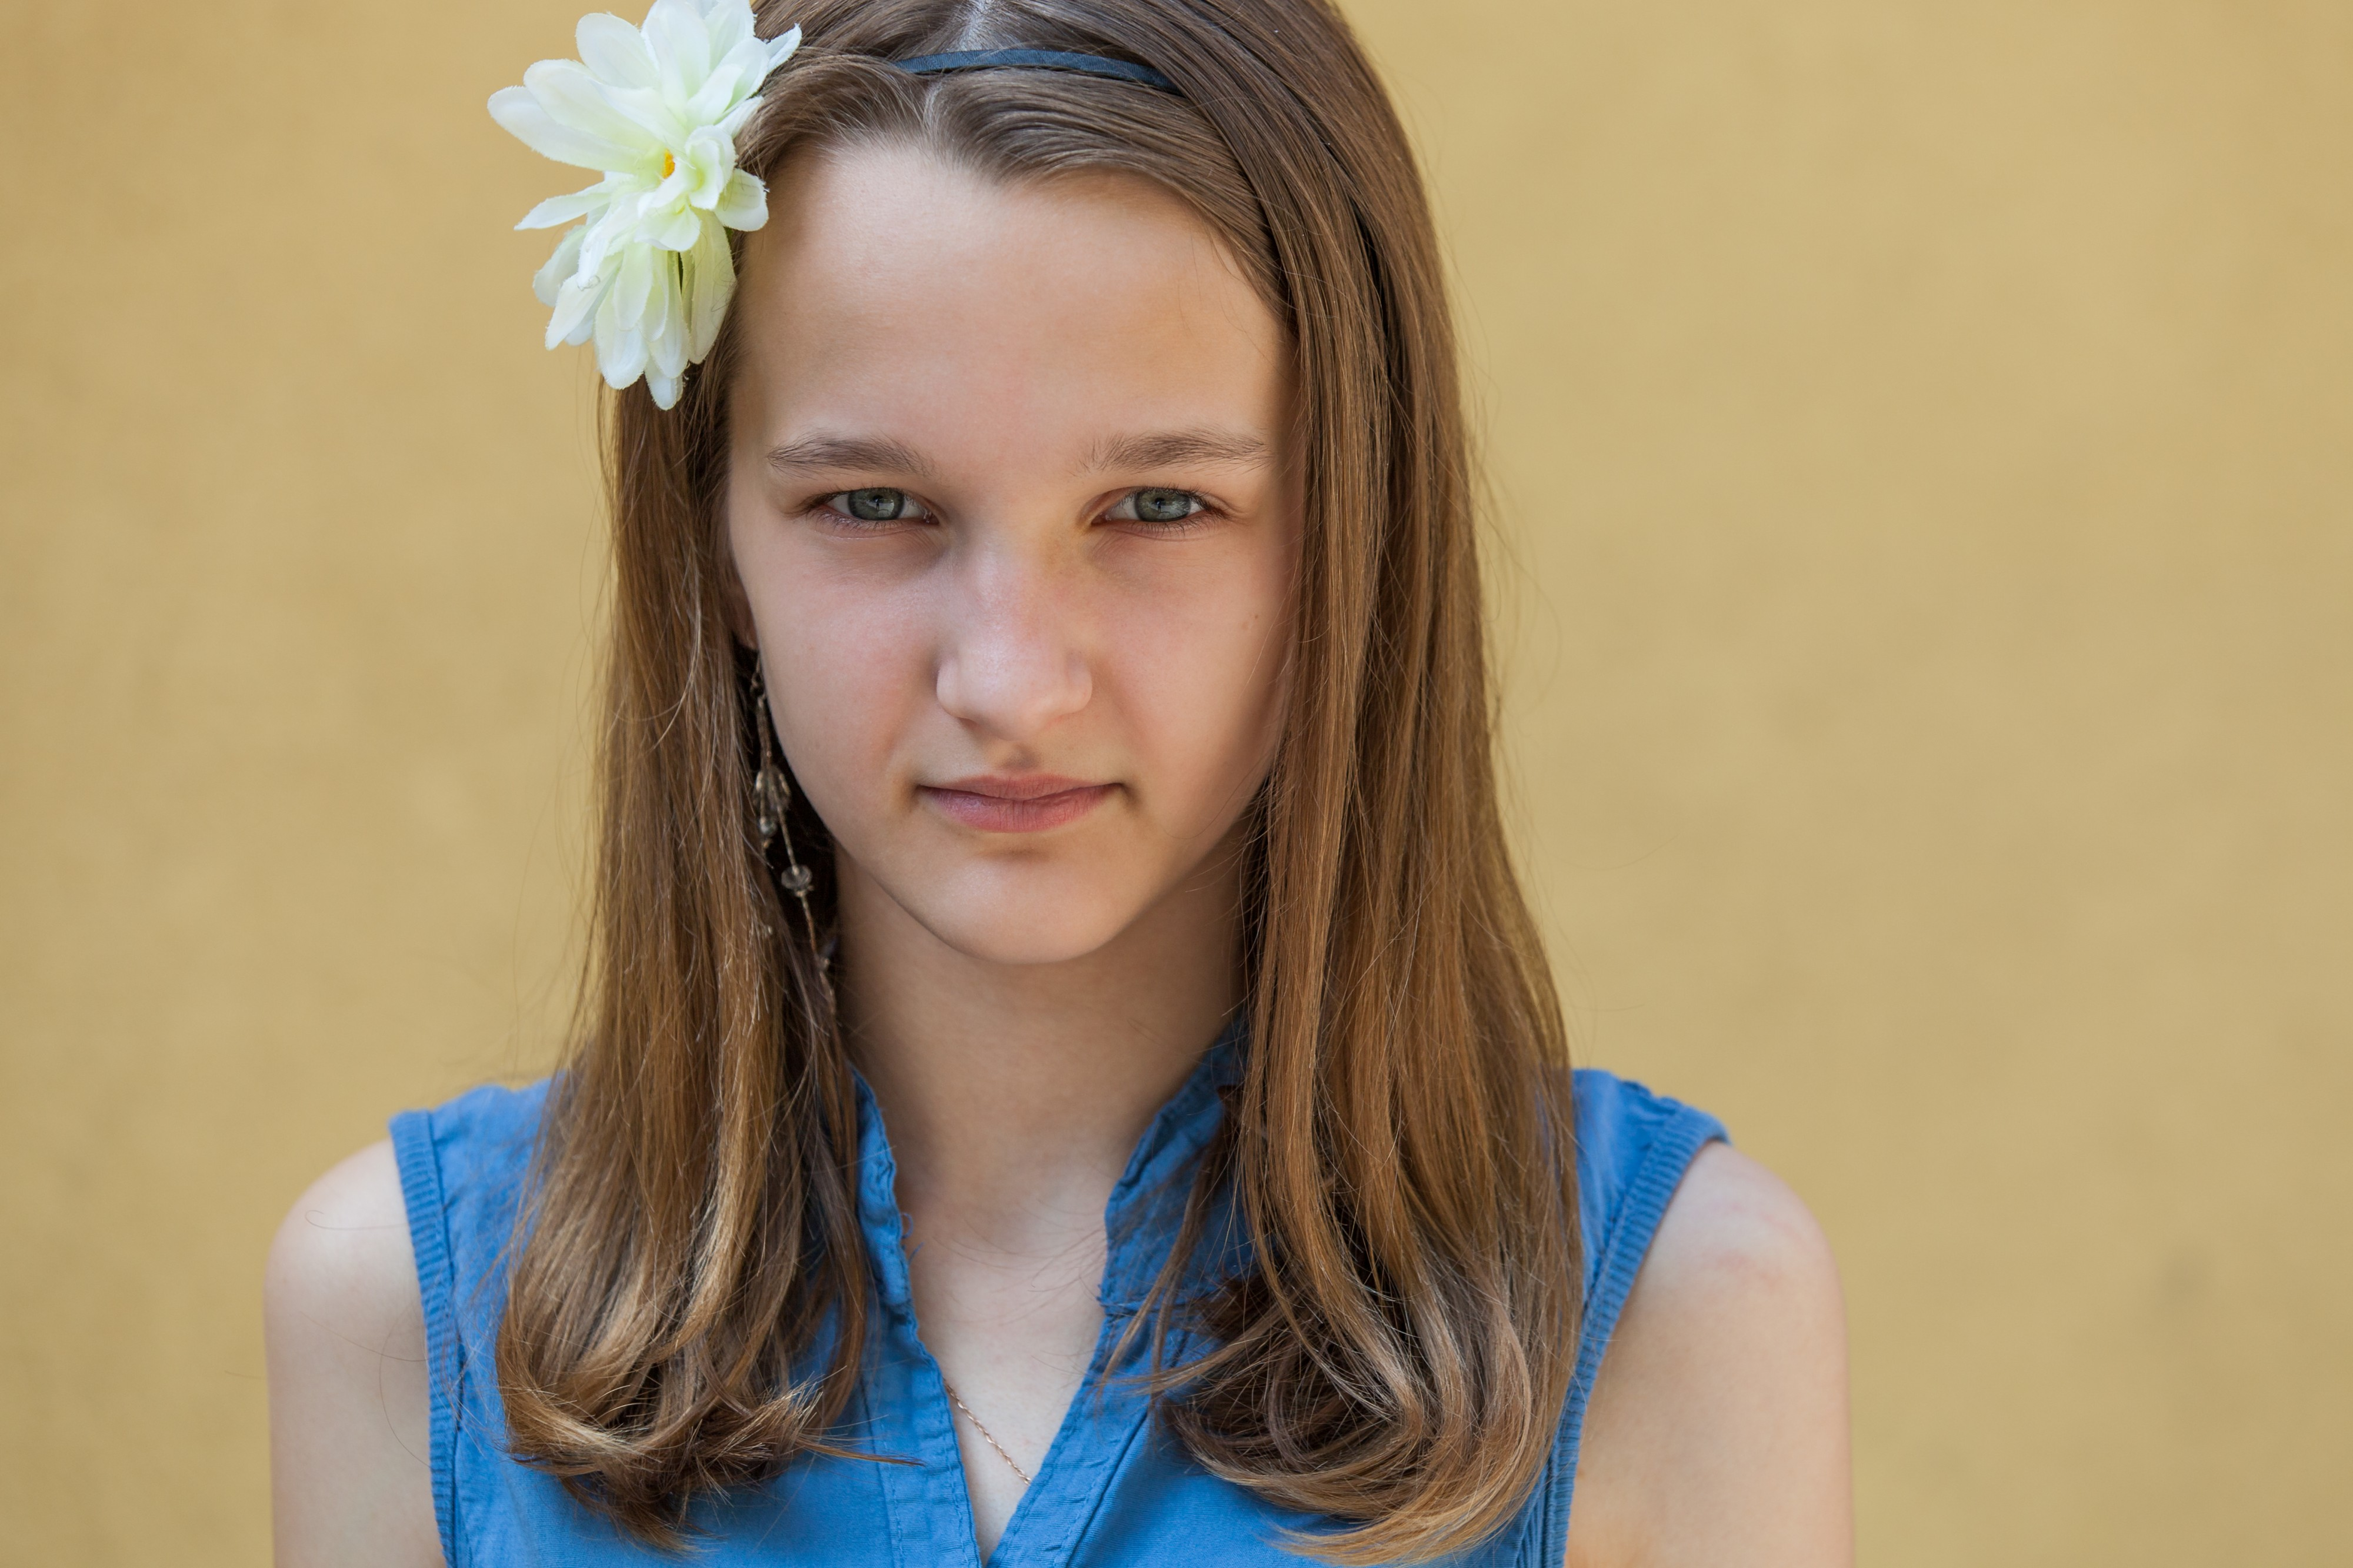 a very photogenic 12-year-old Catholic girl photographed in June 2014, picture 1/4